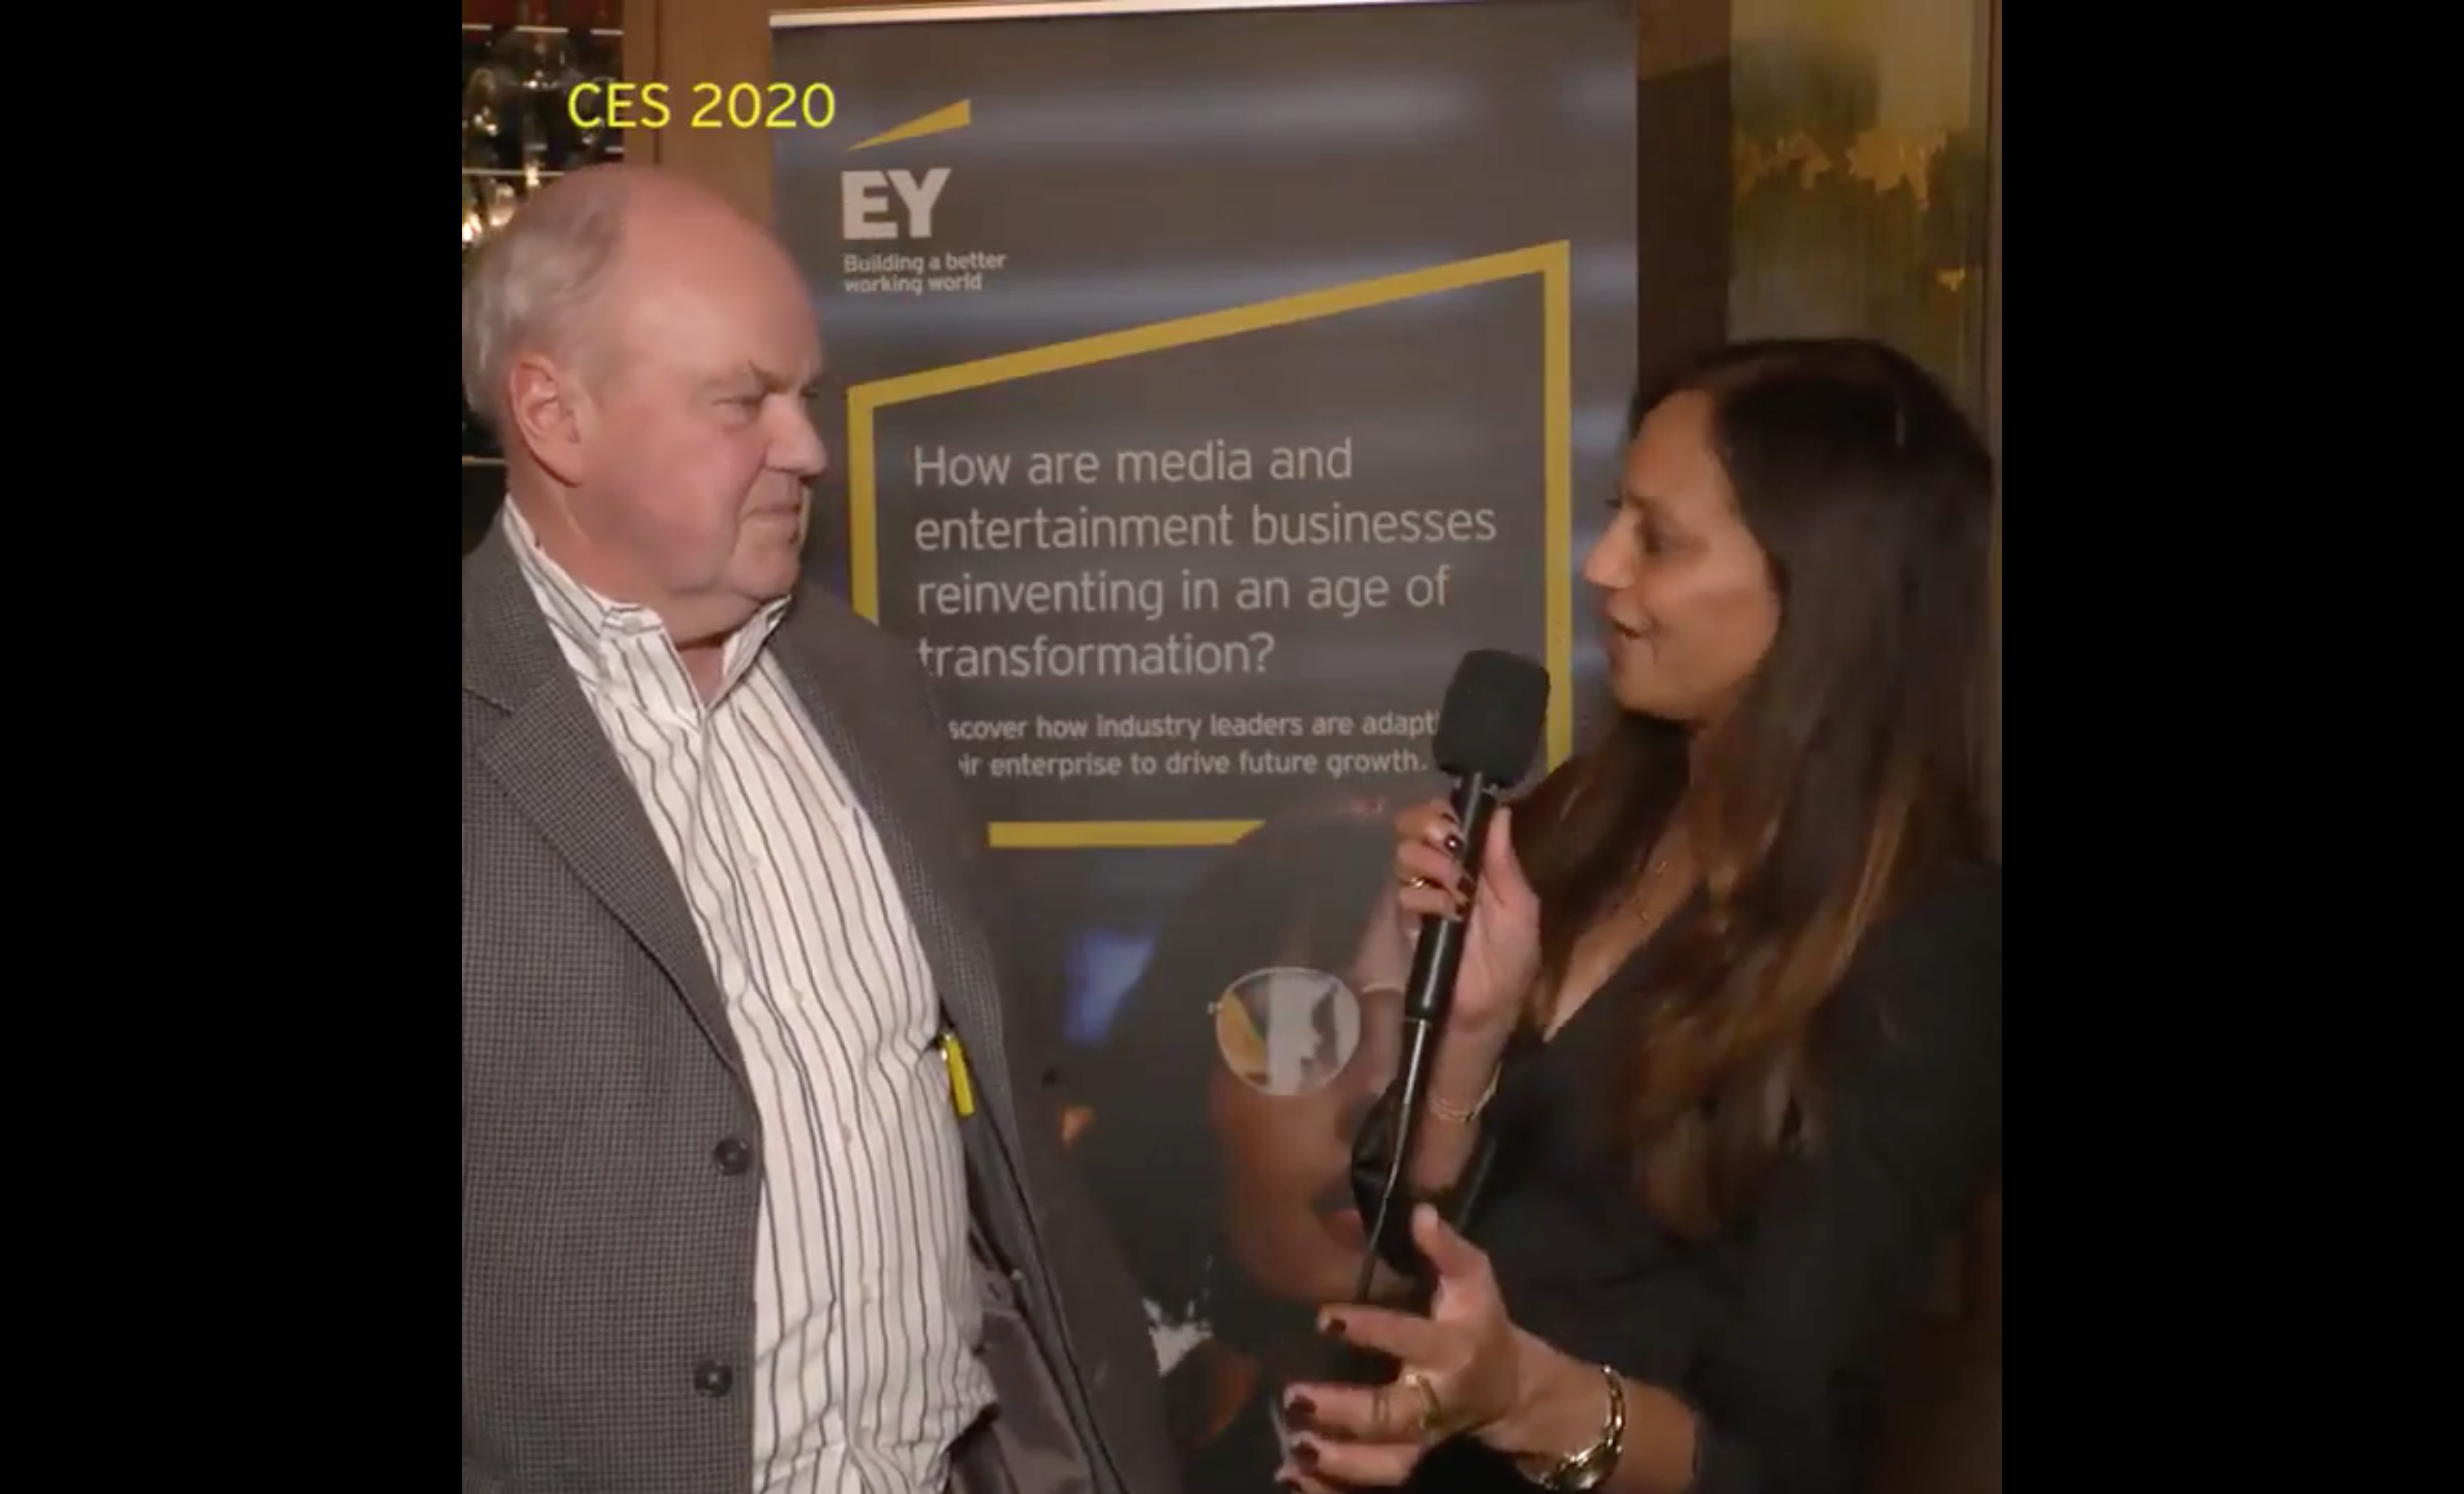 2020 CES - EY and Jalak Jobanputra